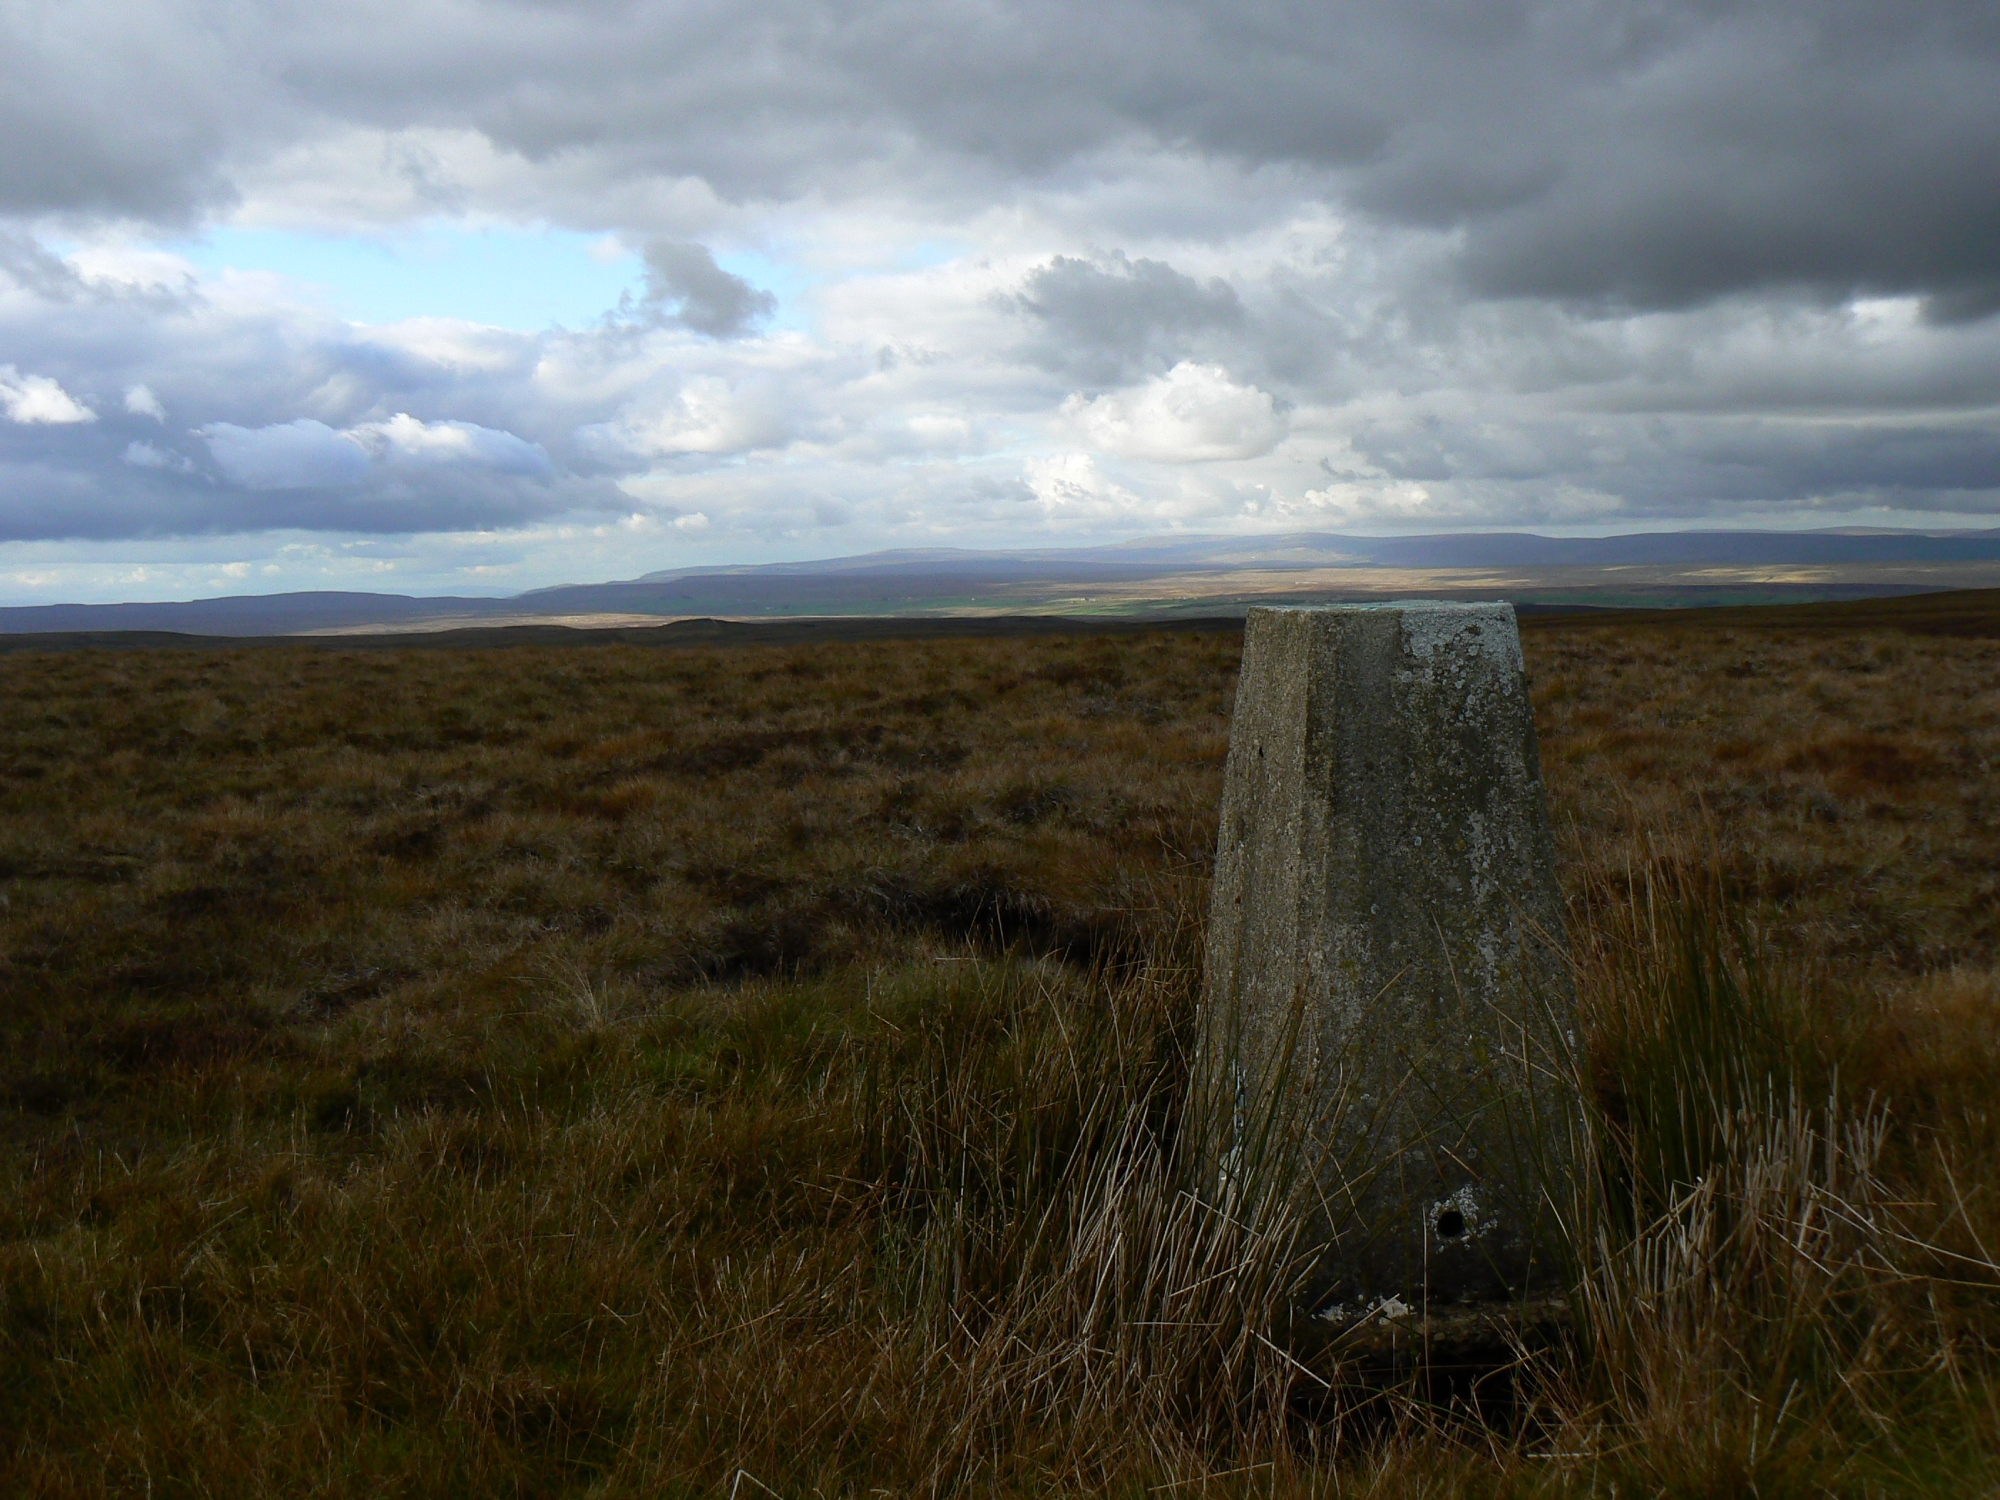 Hoove Trig Point